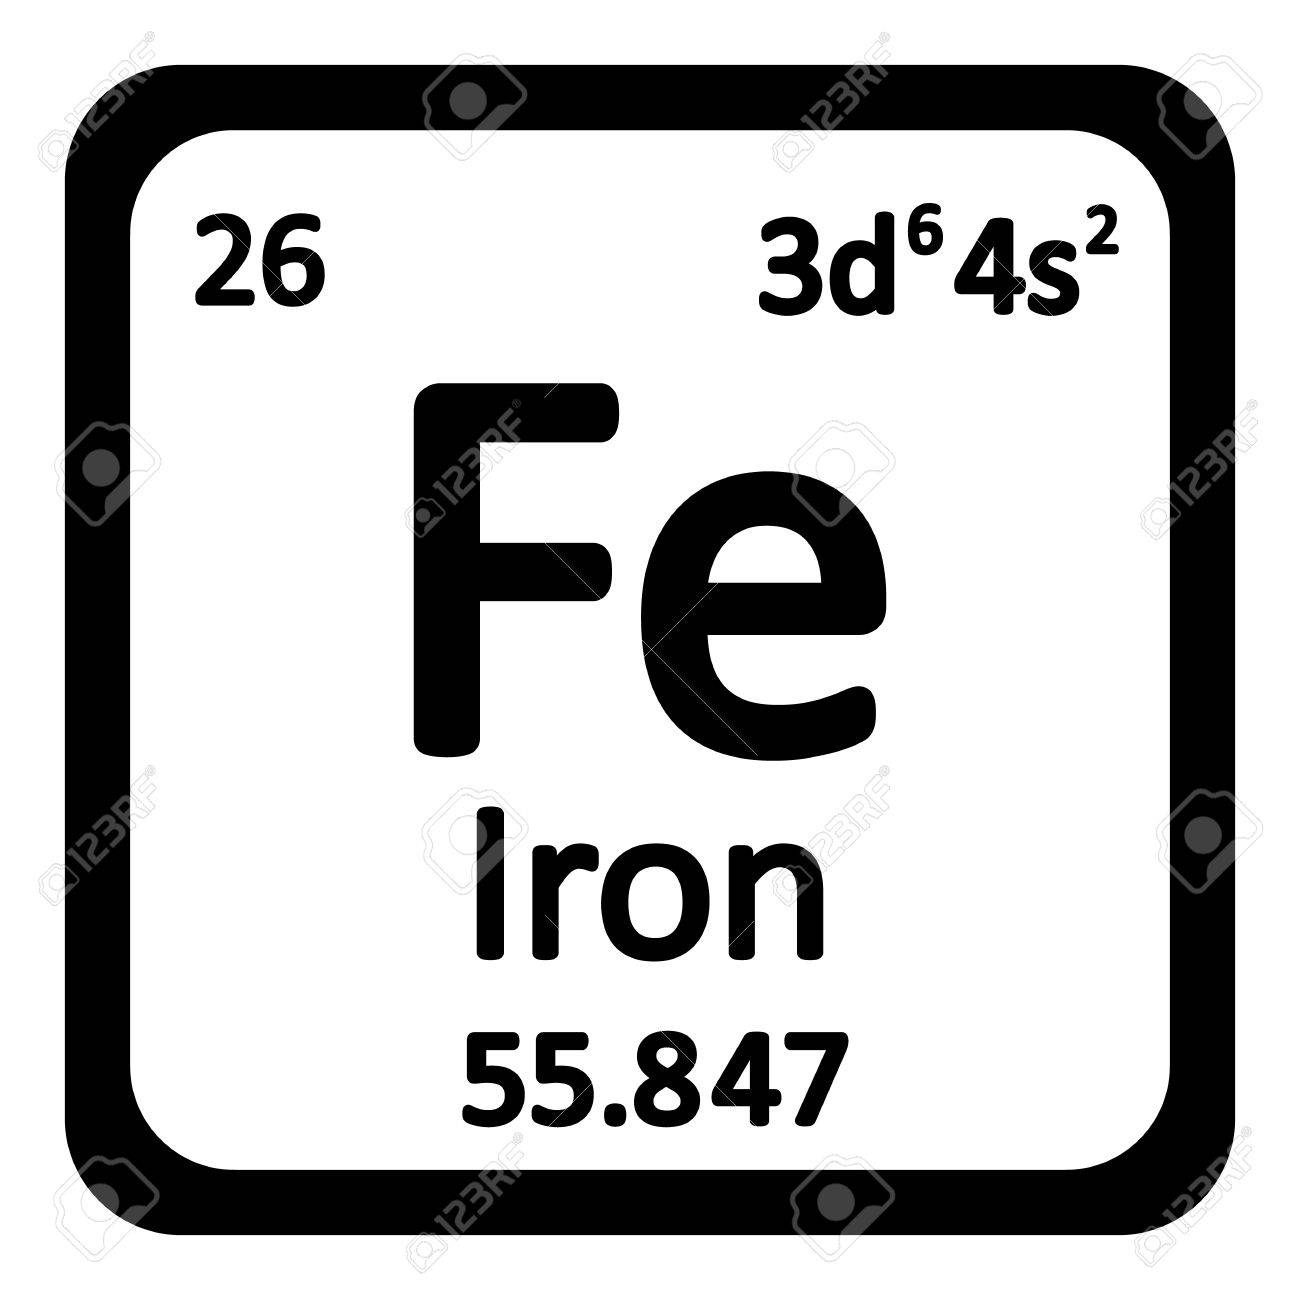 Iron on periodic table images periodic table images fe iron periodic table gallery periodic table images fe iron periodic table image collections periodic table gamestrikefo Choice Image